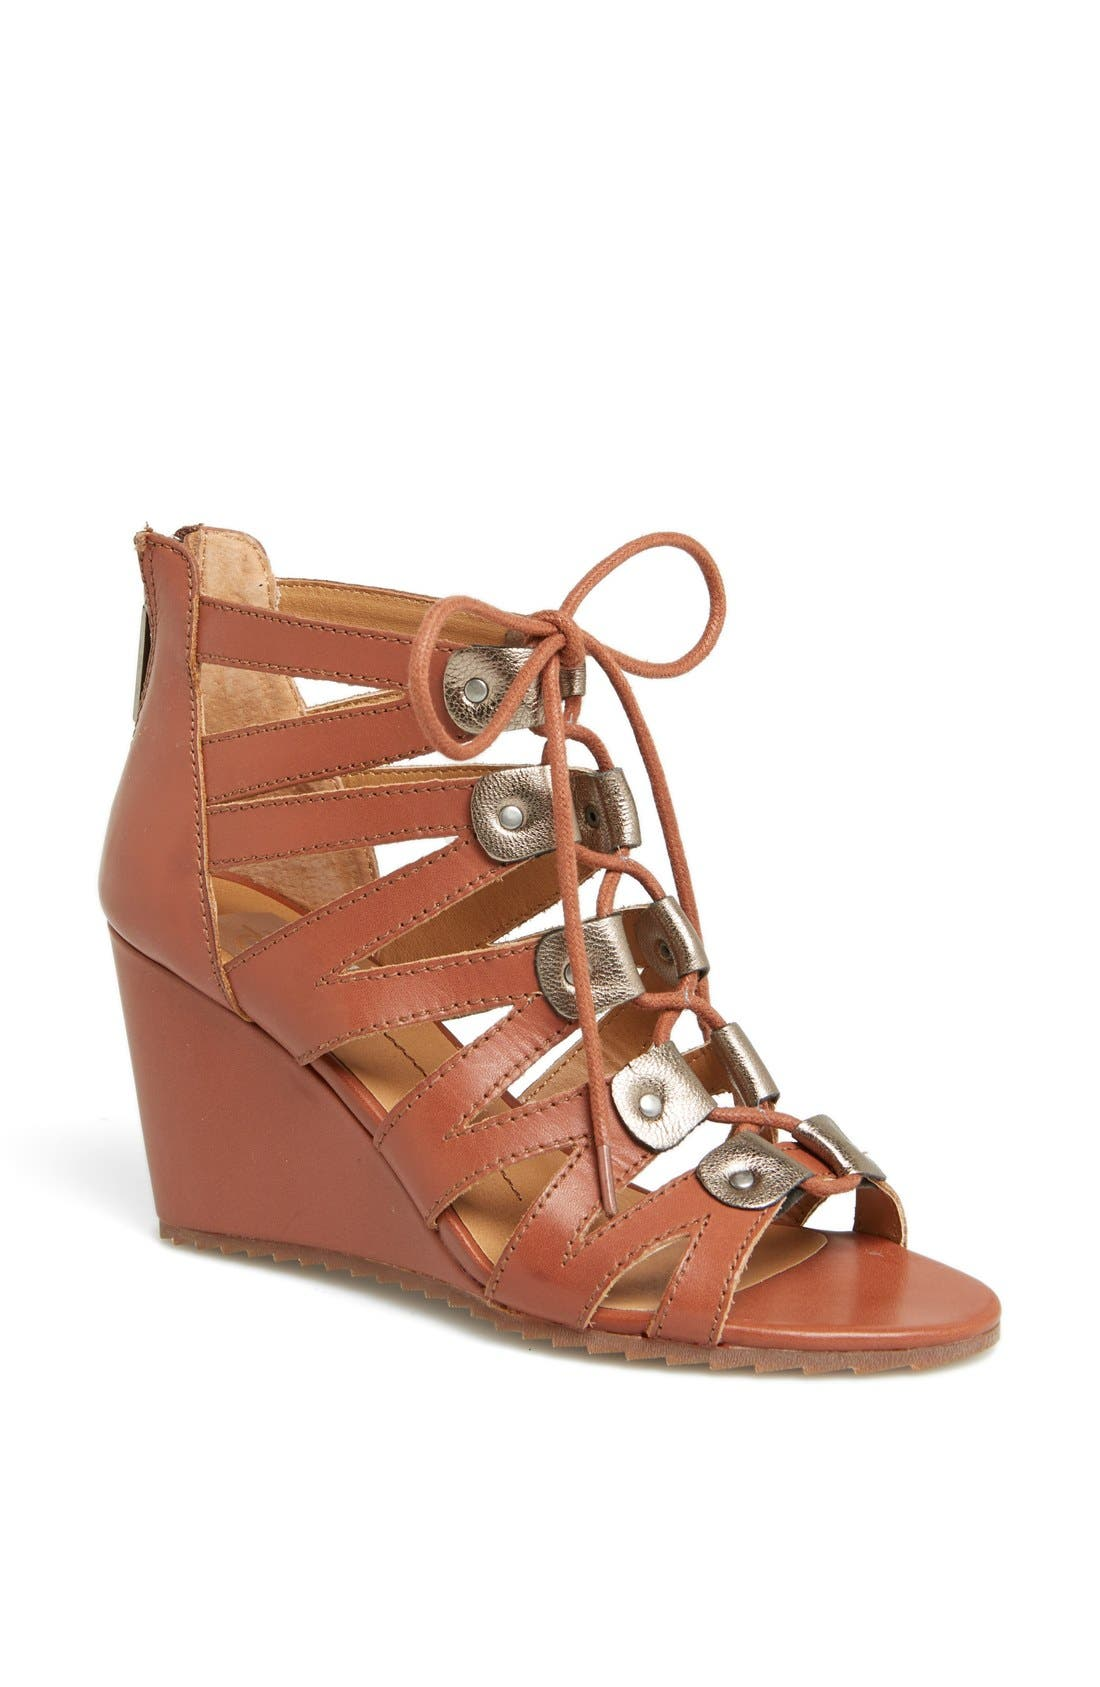 Alternate Image 1 Selected - DV by Dolce Vita 'Rhoda' Sandal